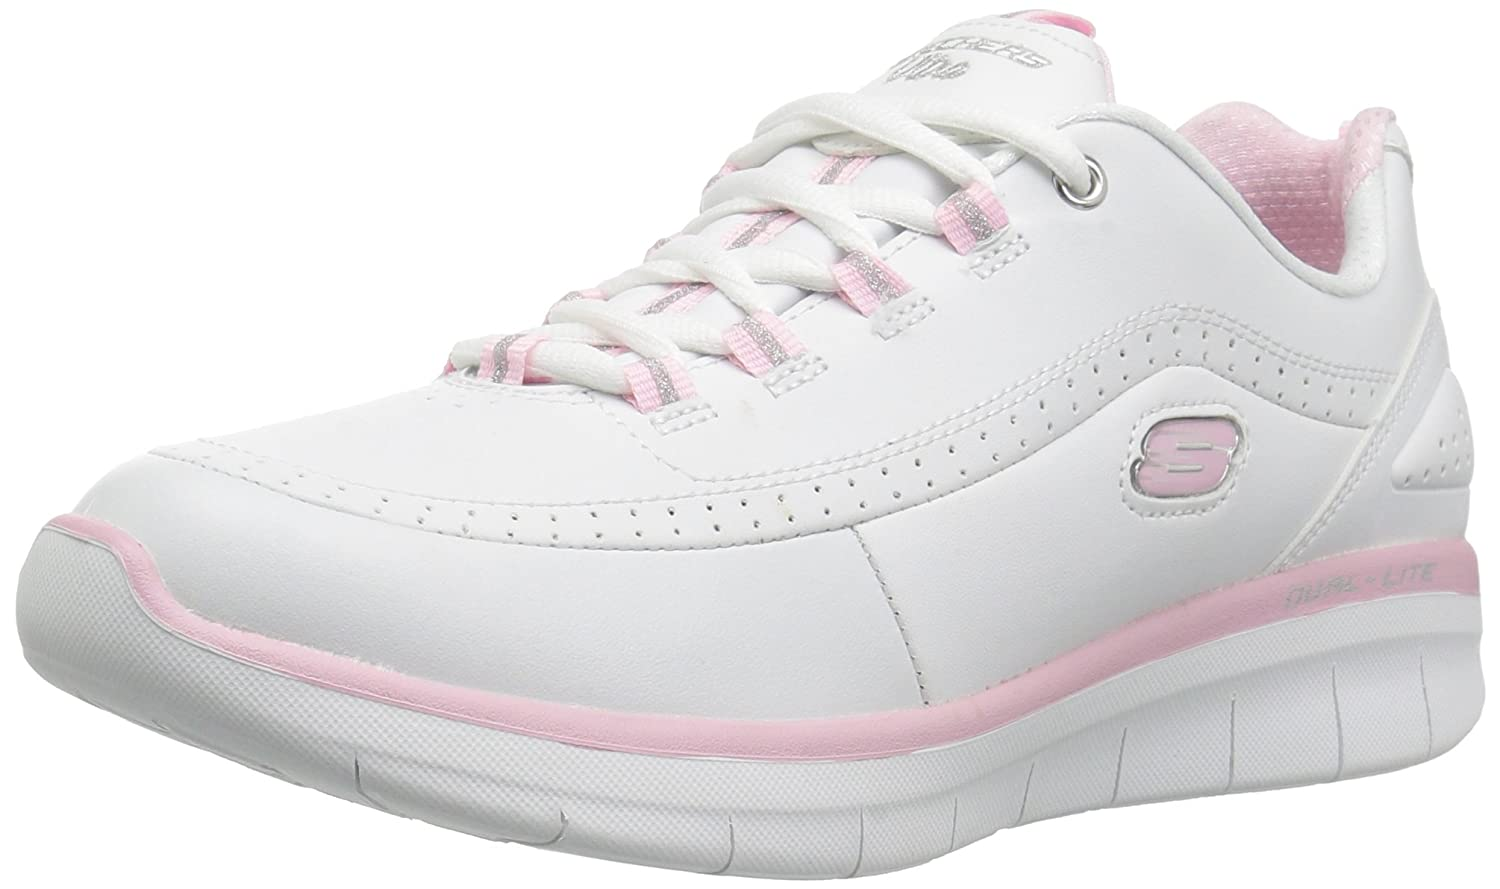 Skechers Synergy 2.0, Zapatillas para Mujer 3|White/Pink